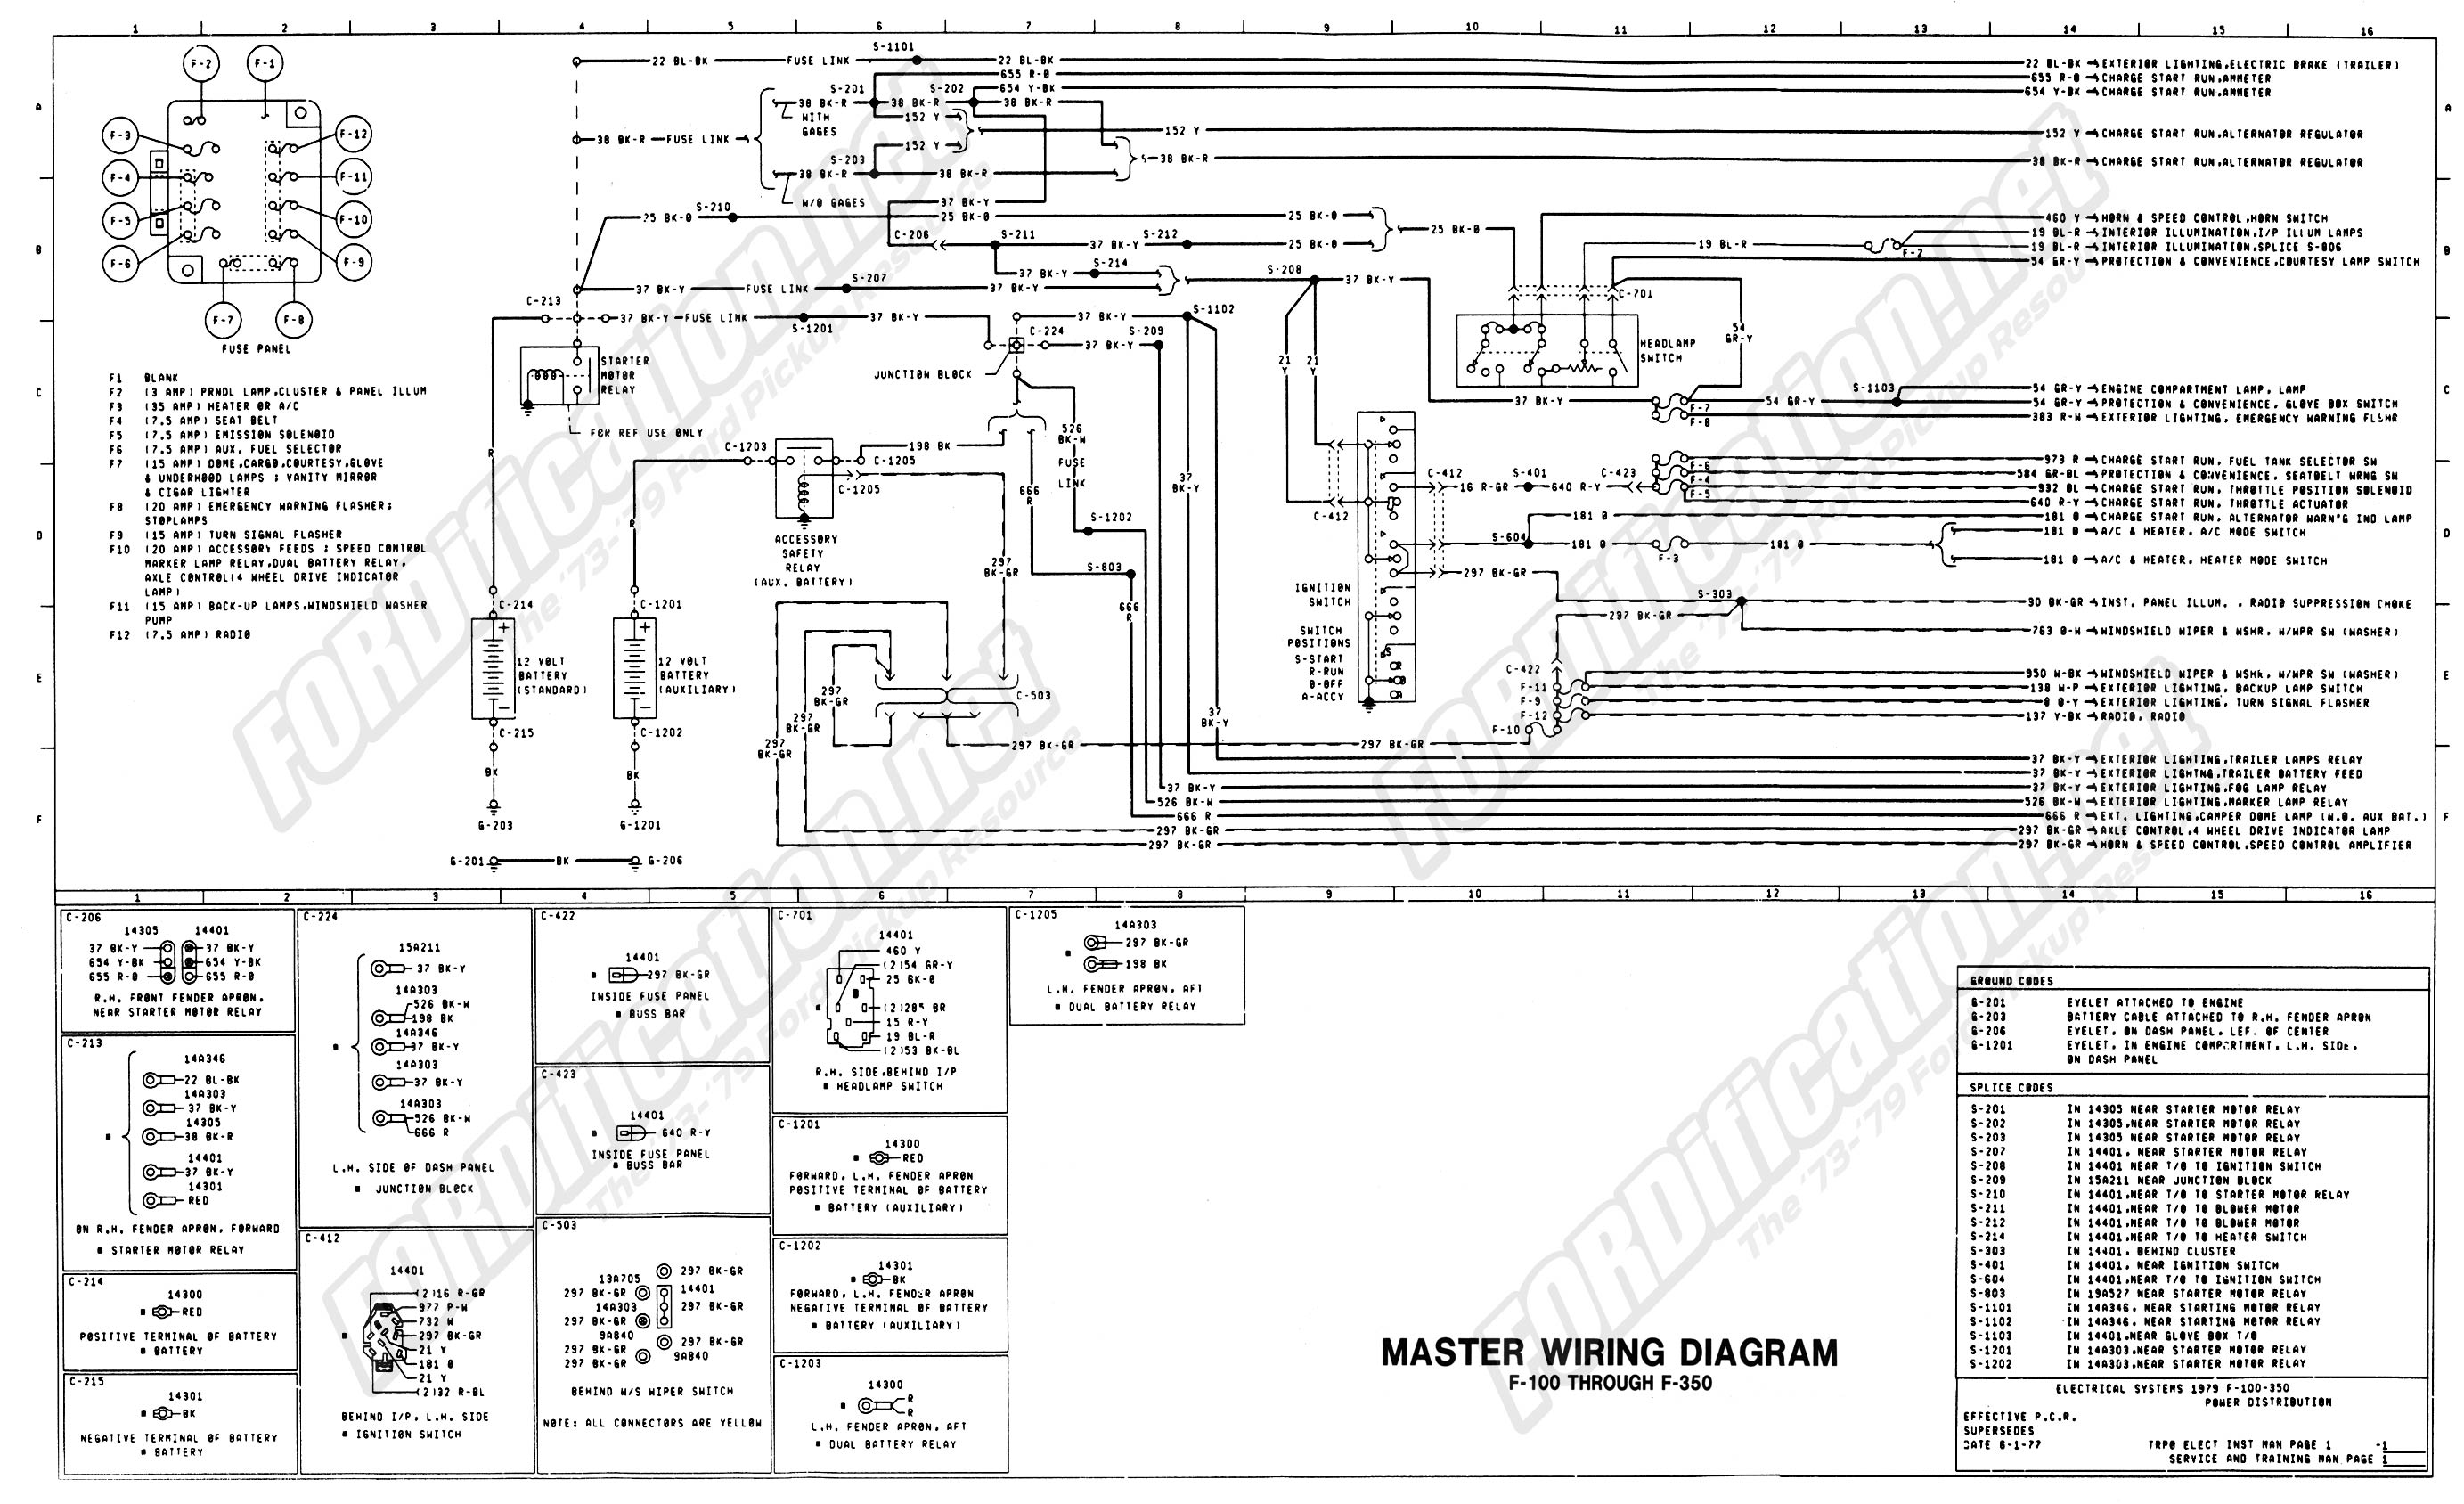 wiring_79master_1of9 1973 1979 ford truck wiring diagrams & schematics fordification net truck wiring schematics at bayanpartner.co